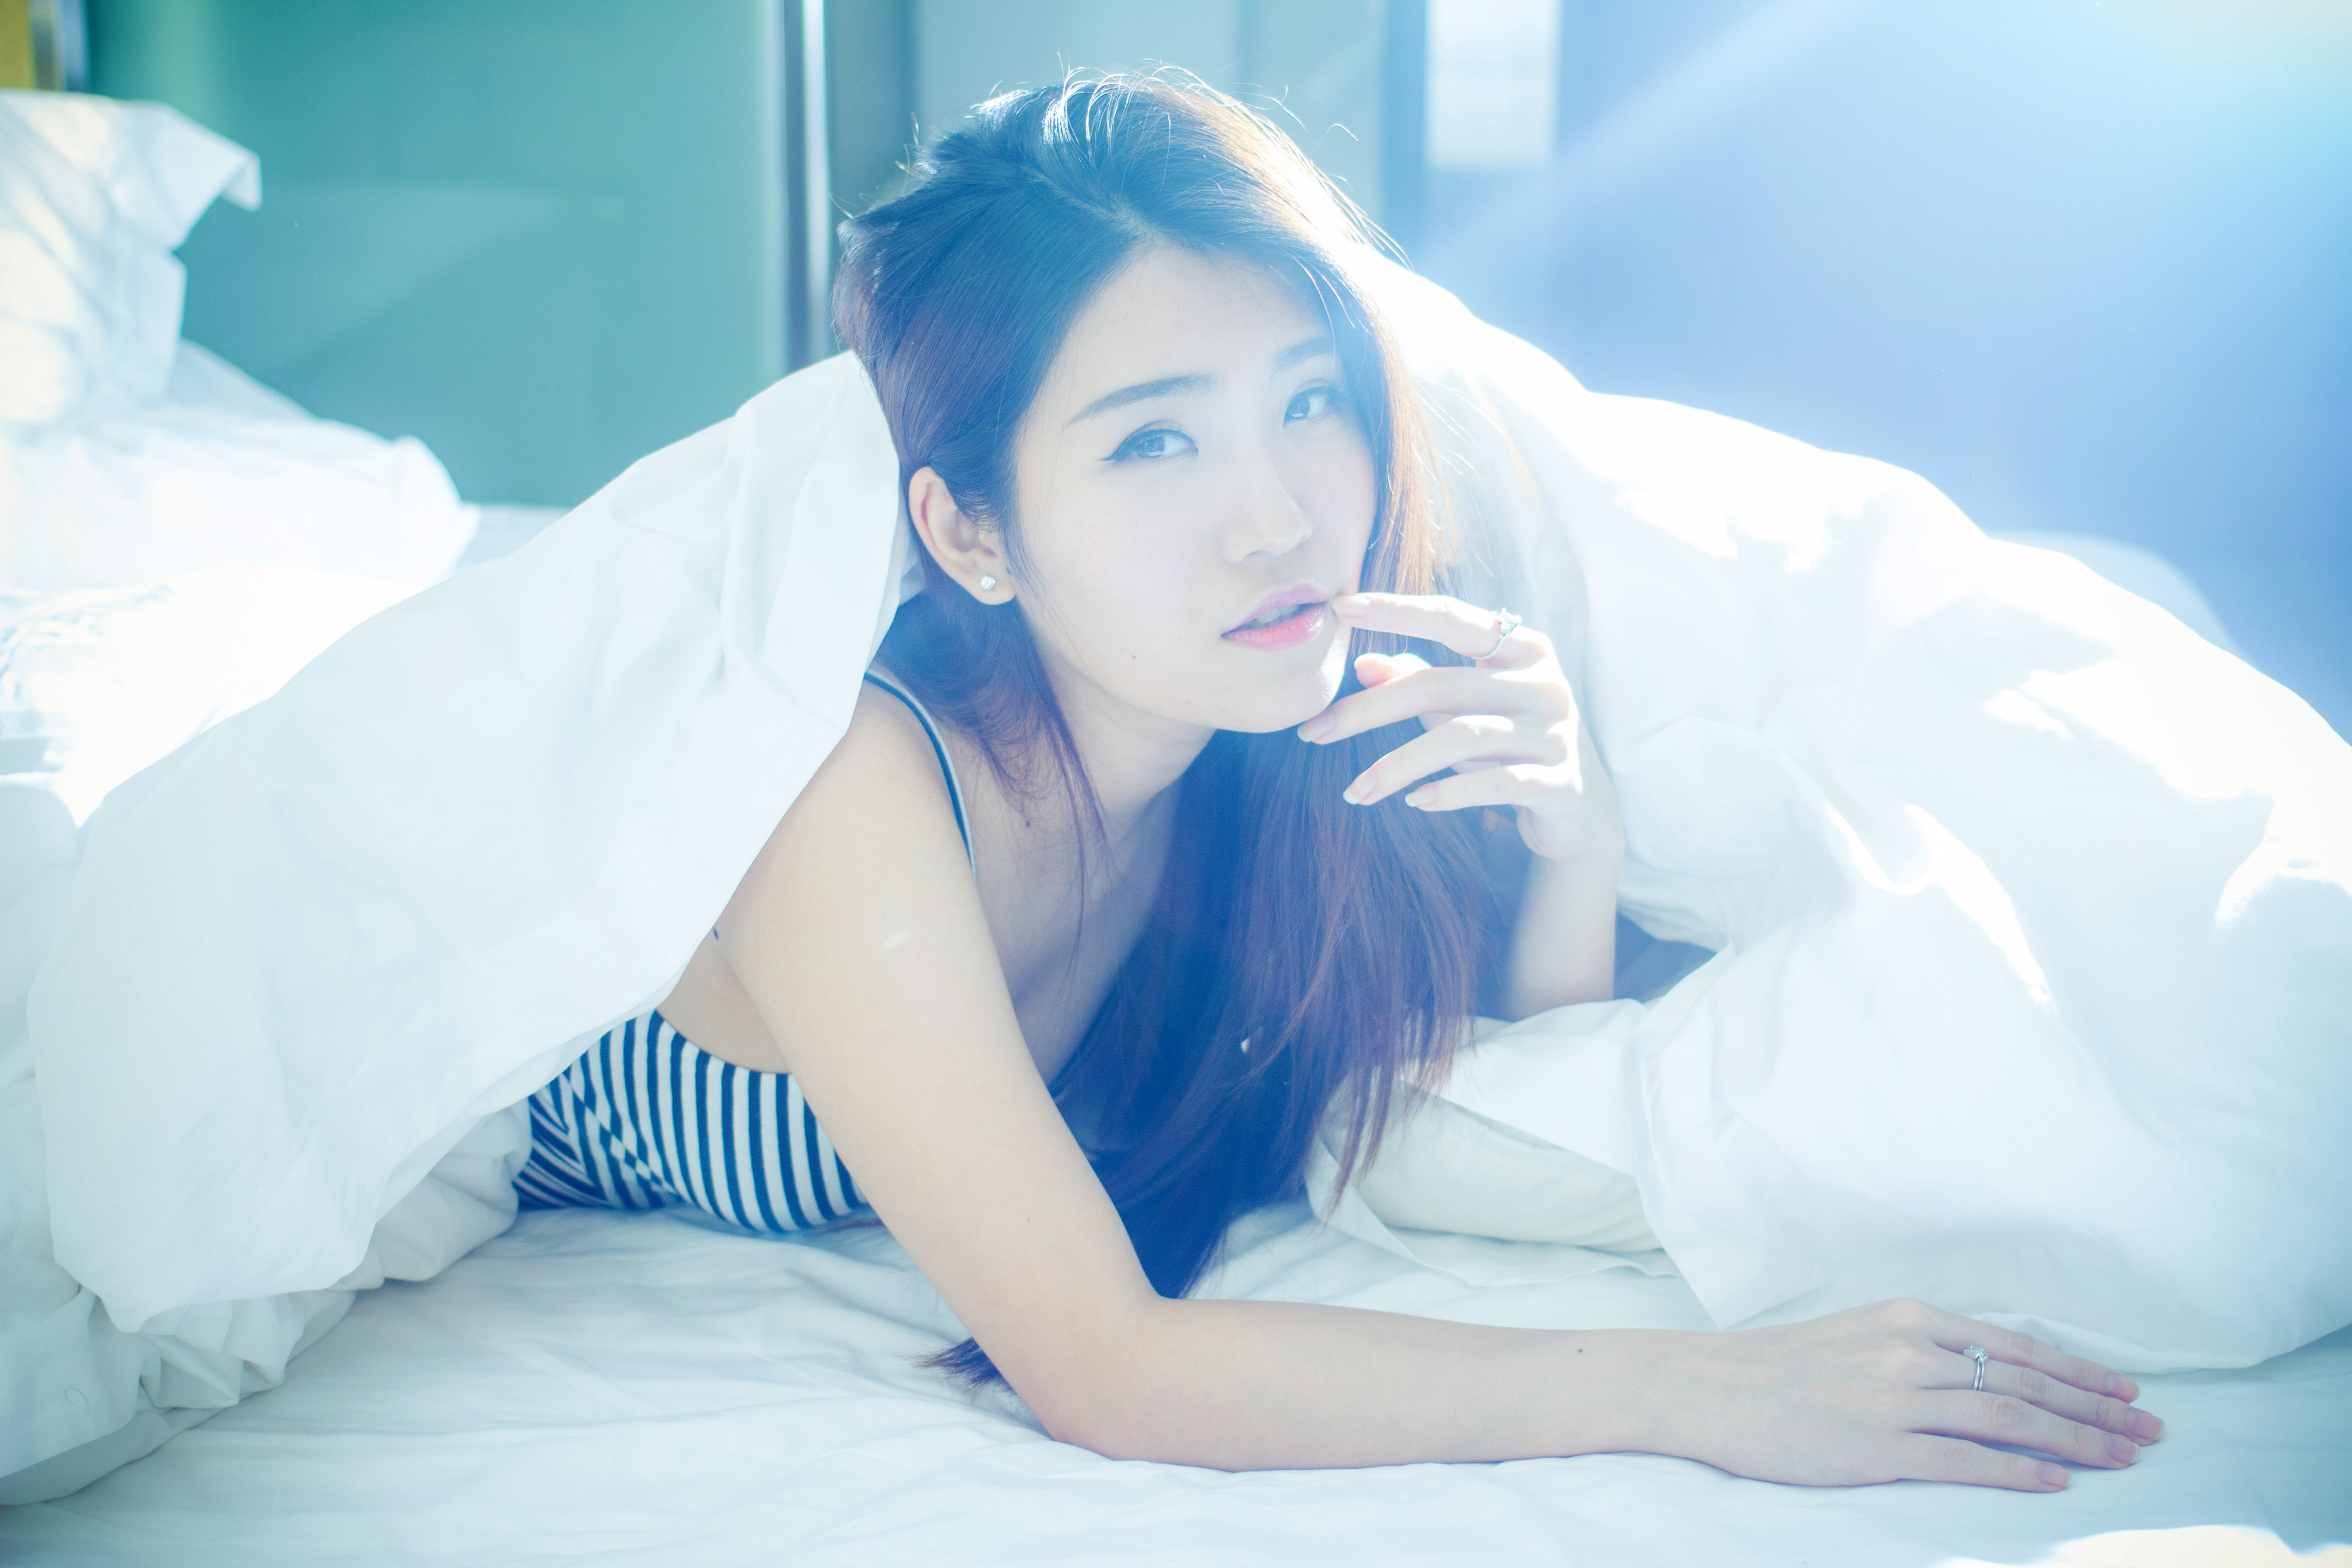 beautiful-asian-girl-in-bed-in-sunlight image - Free stock